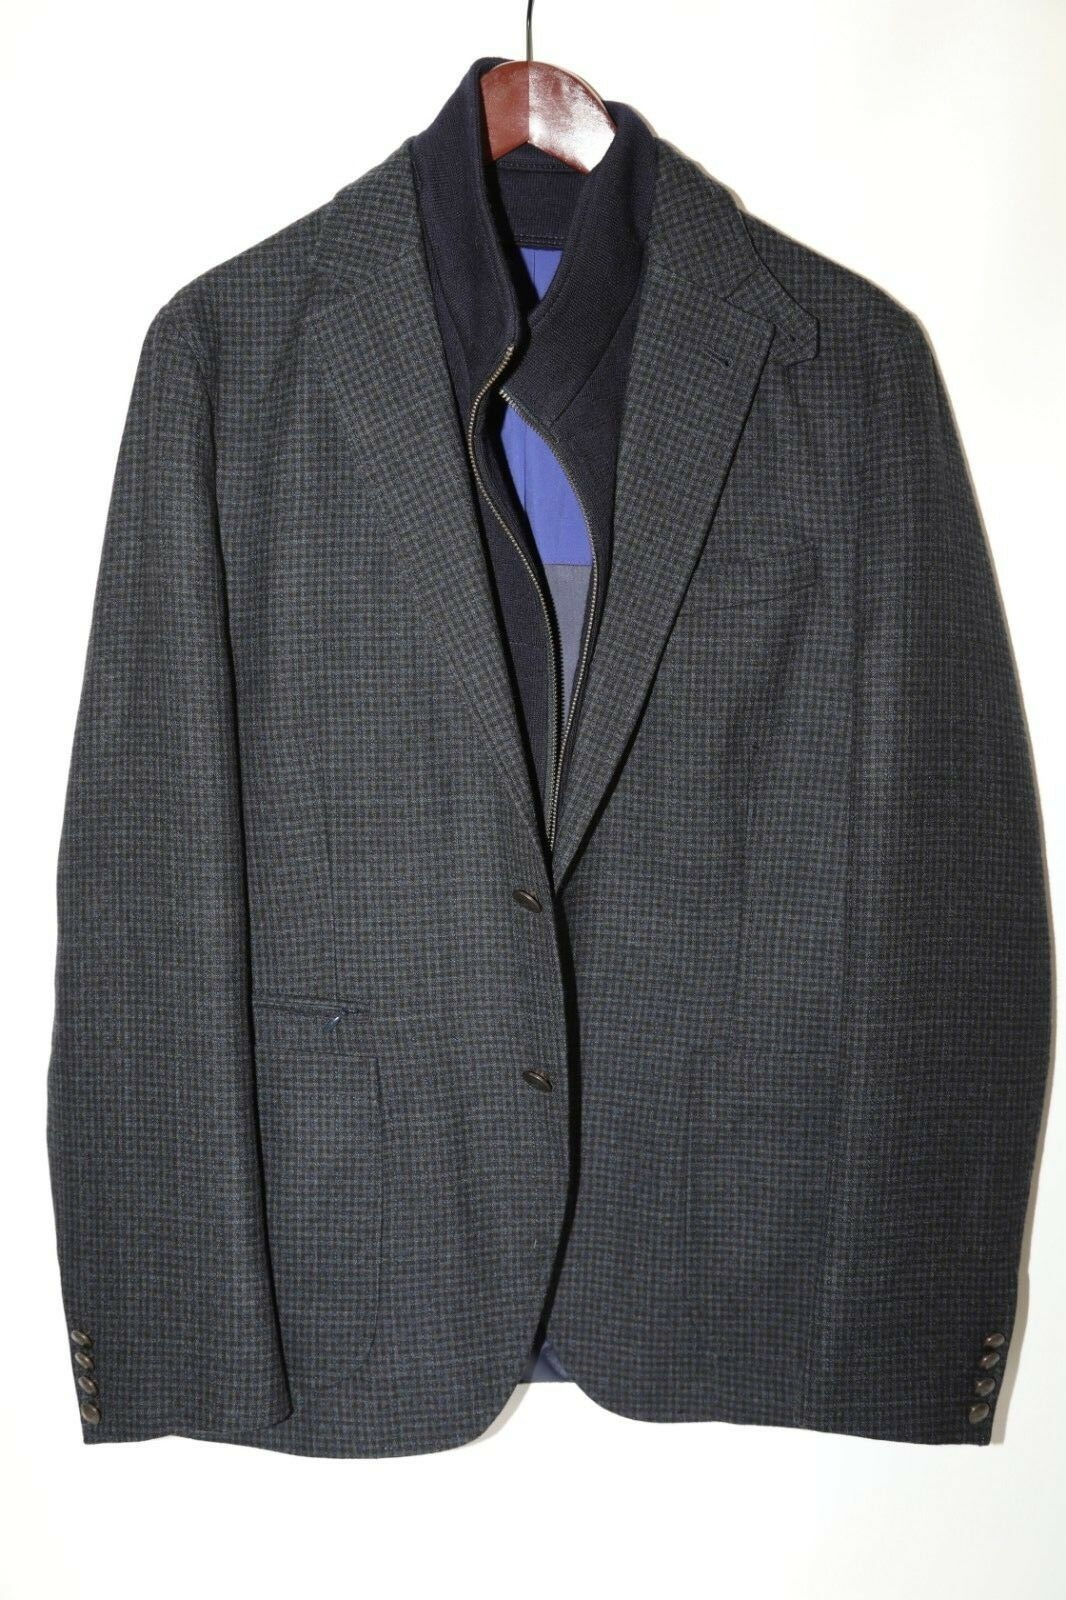 Kroon Jones Hybrid Wool Blazer Sports Coat Size 40 R